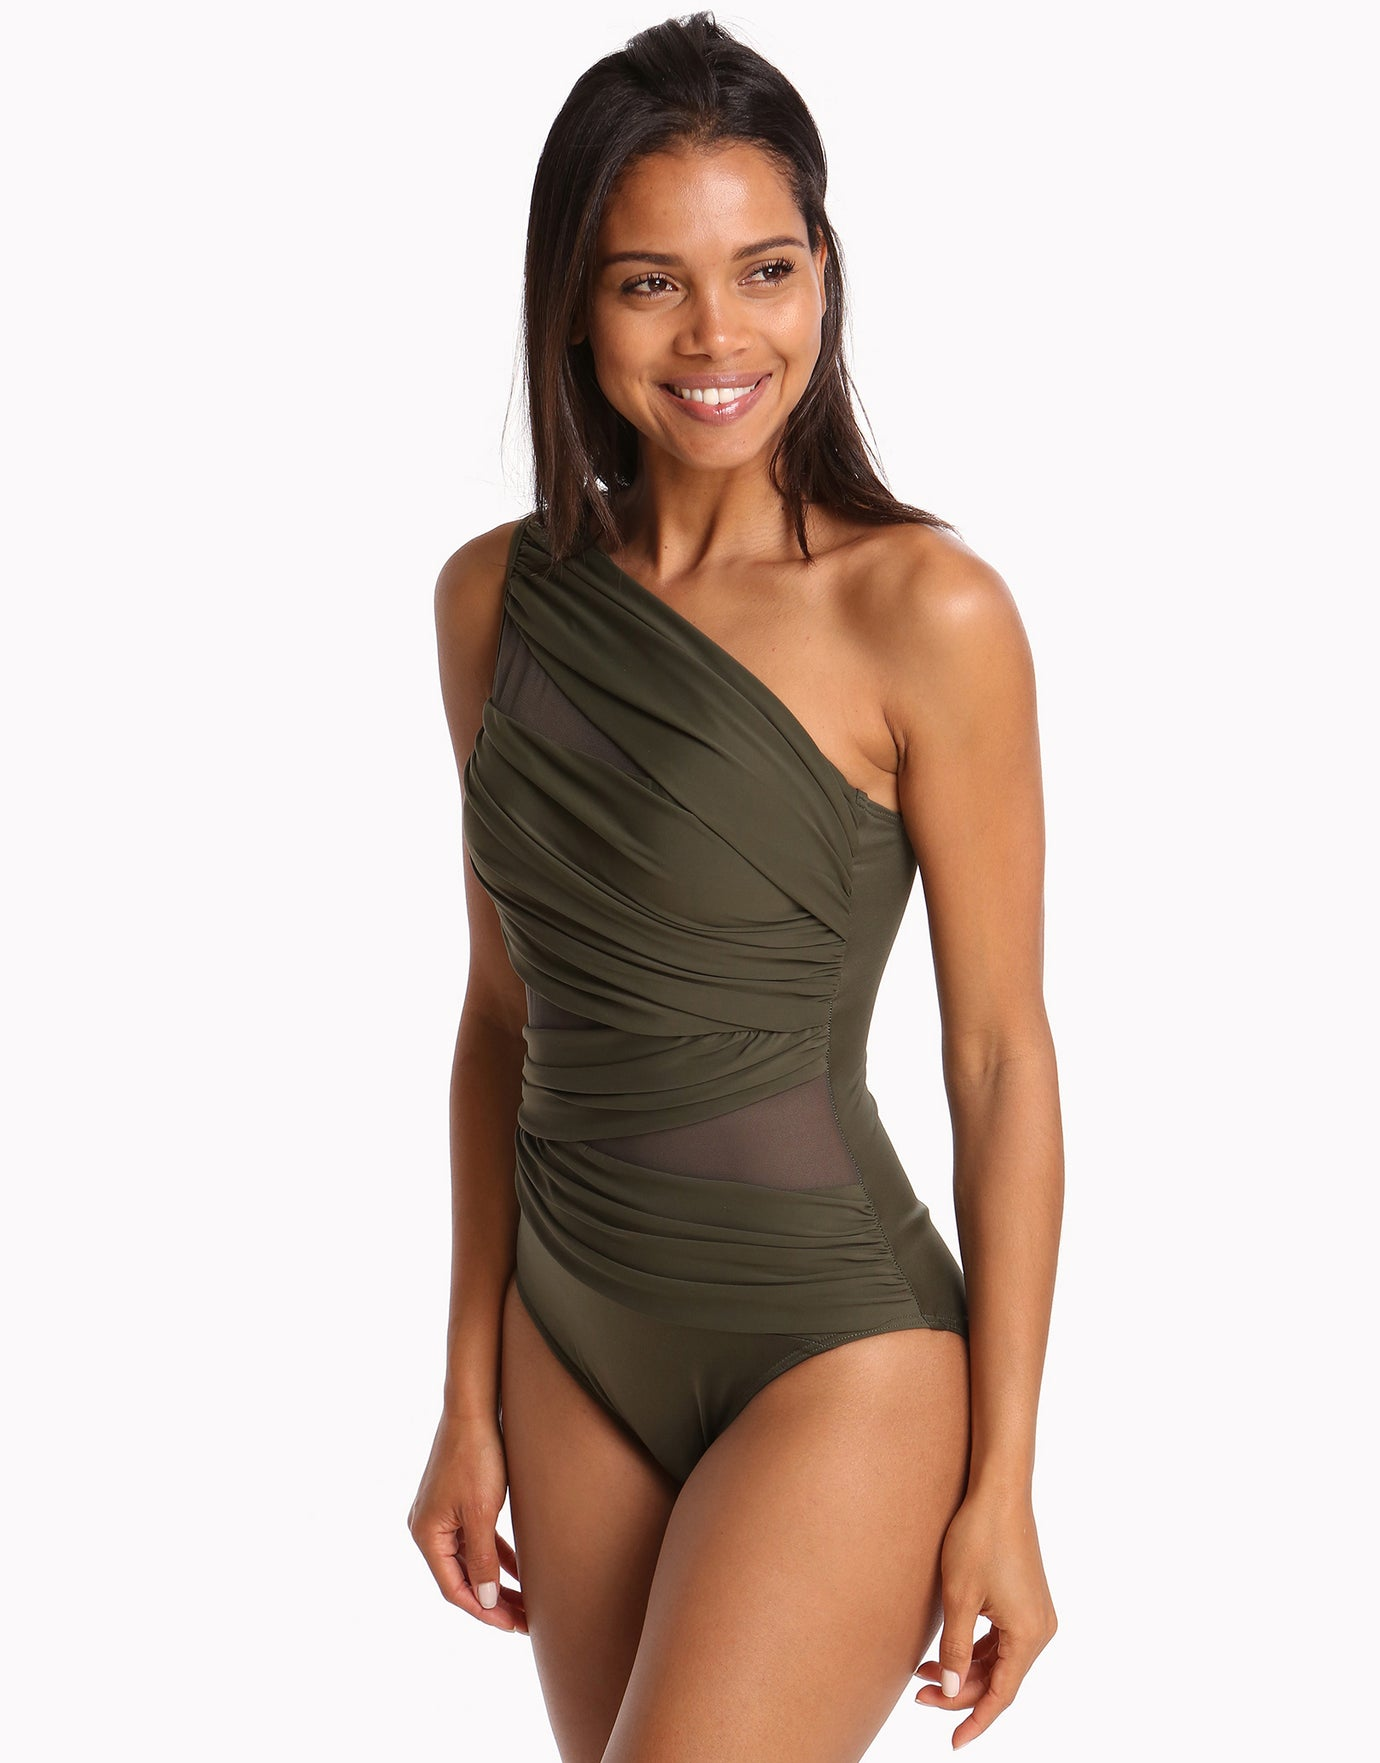 Miraclesuit Network Jena Swimsuit - Olive